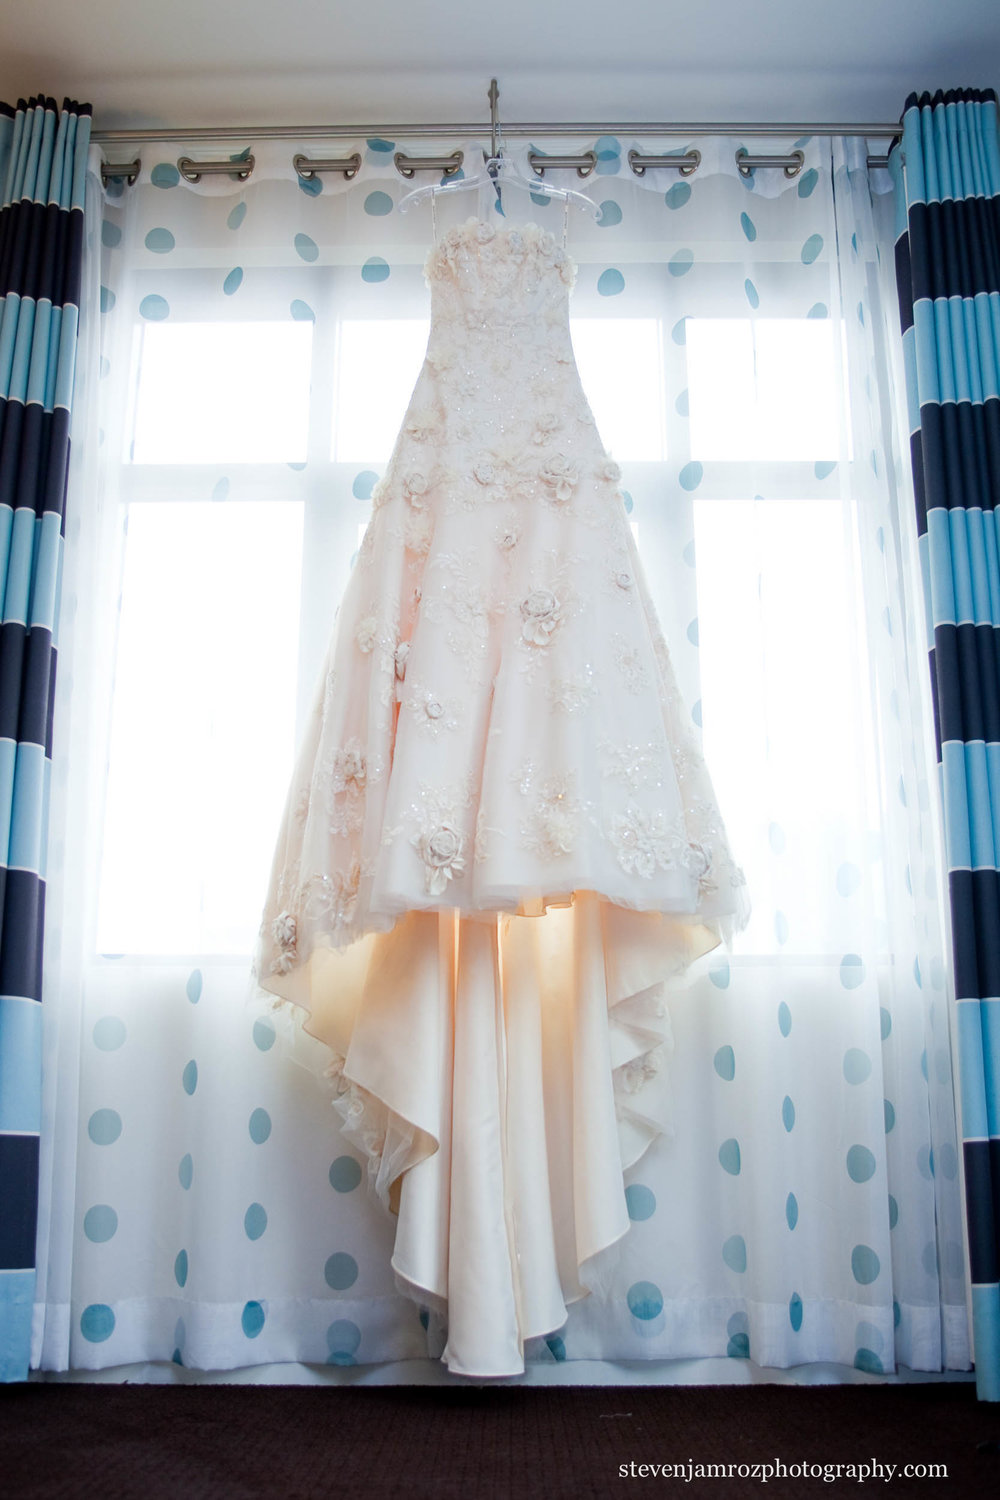 dress-hanging-in-window-wedding-raleigh-steven-jamroz-photography-0228.jpg